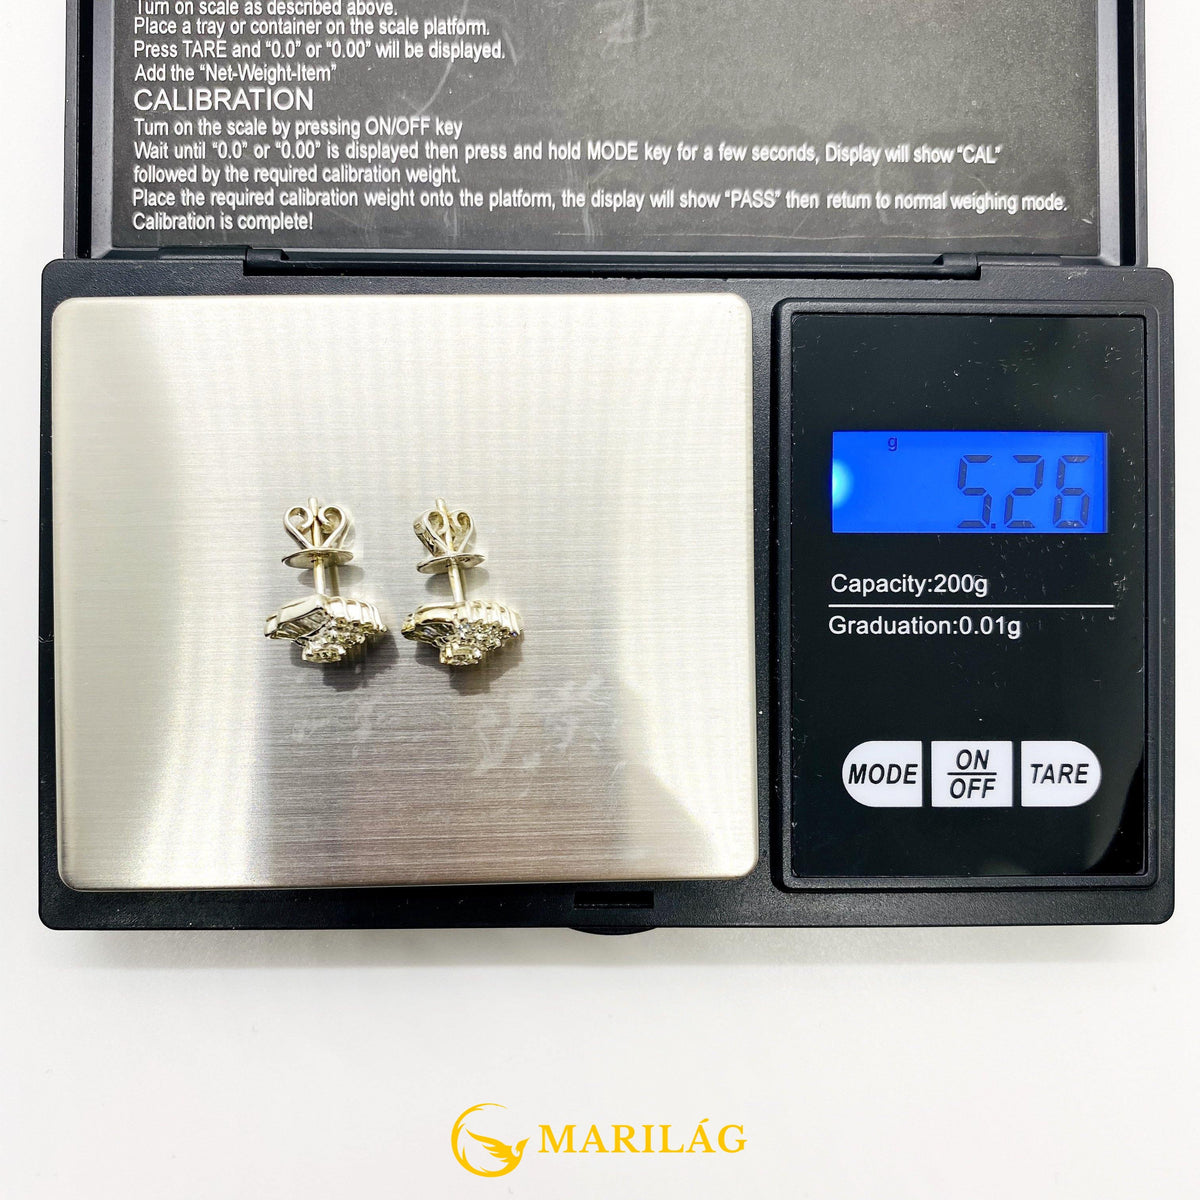 PAG-IBIG Earrings - Marilág Estate Jewelry